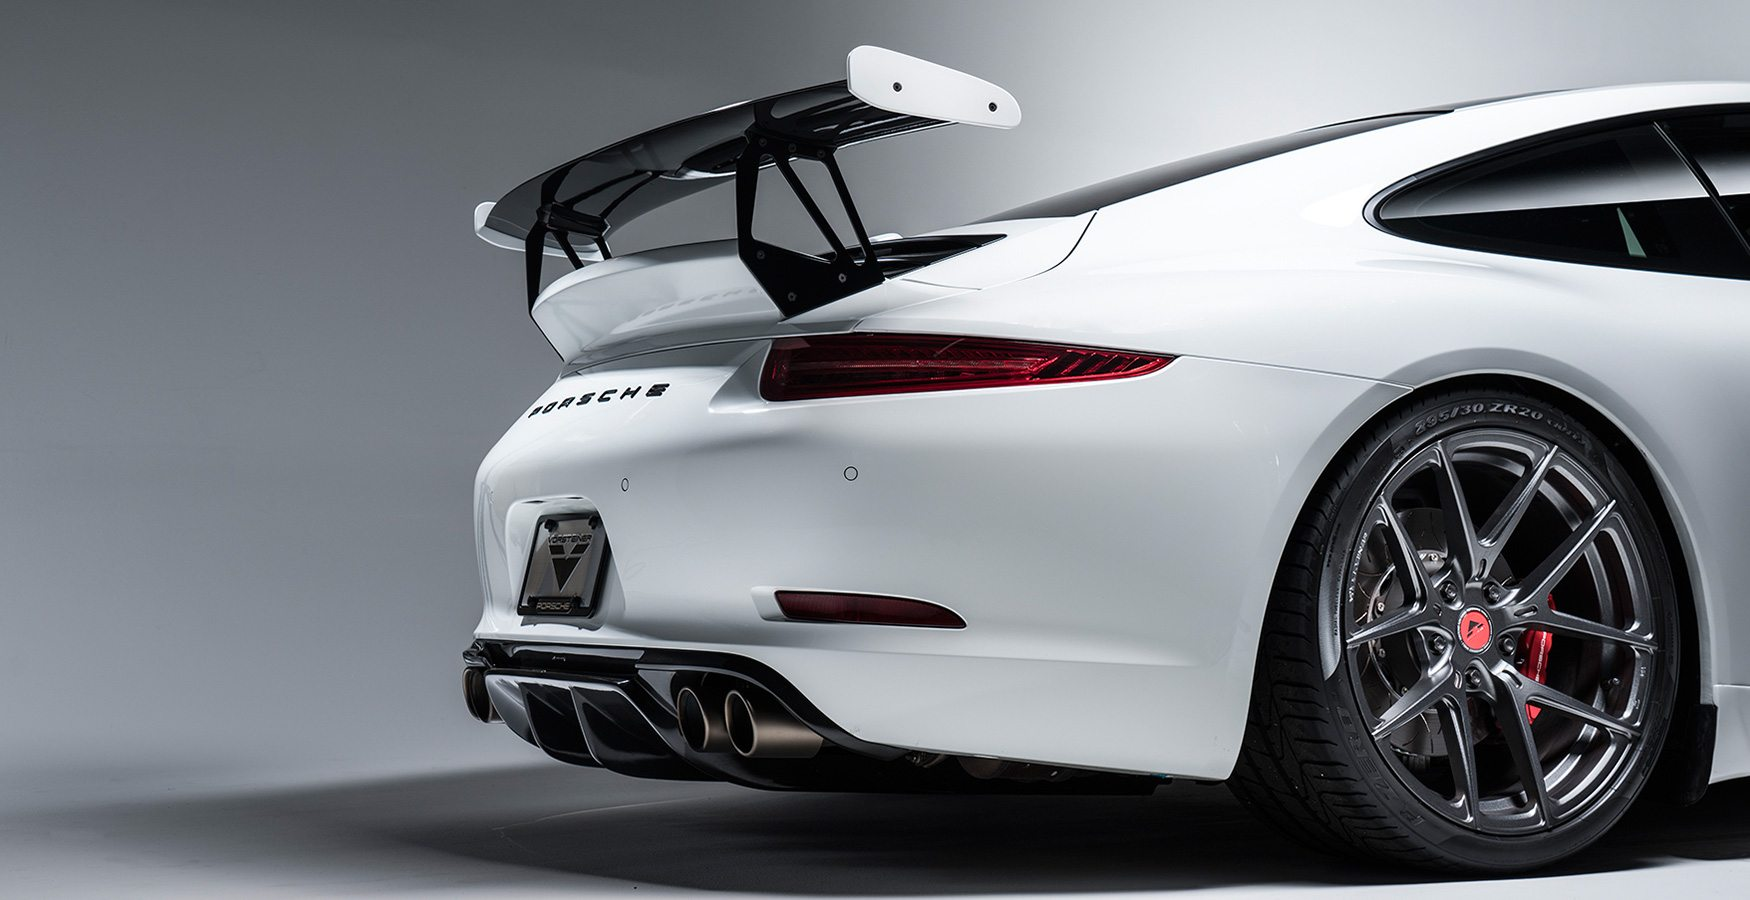 991_vgt_carbon_wing.jpg